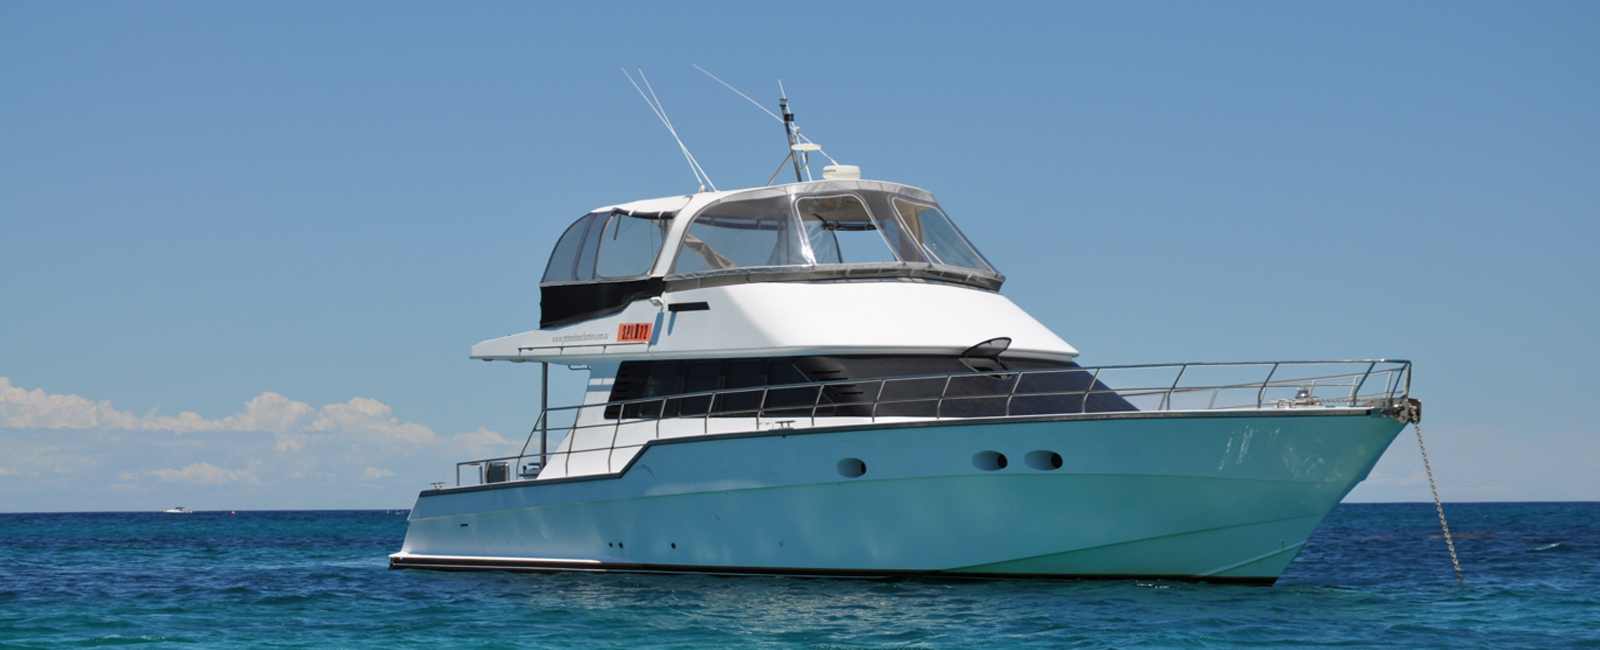 ALEGRIA-side-profile-photo-Rottnest-Island-boat-charters-Perth